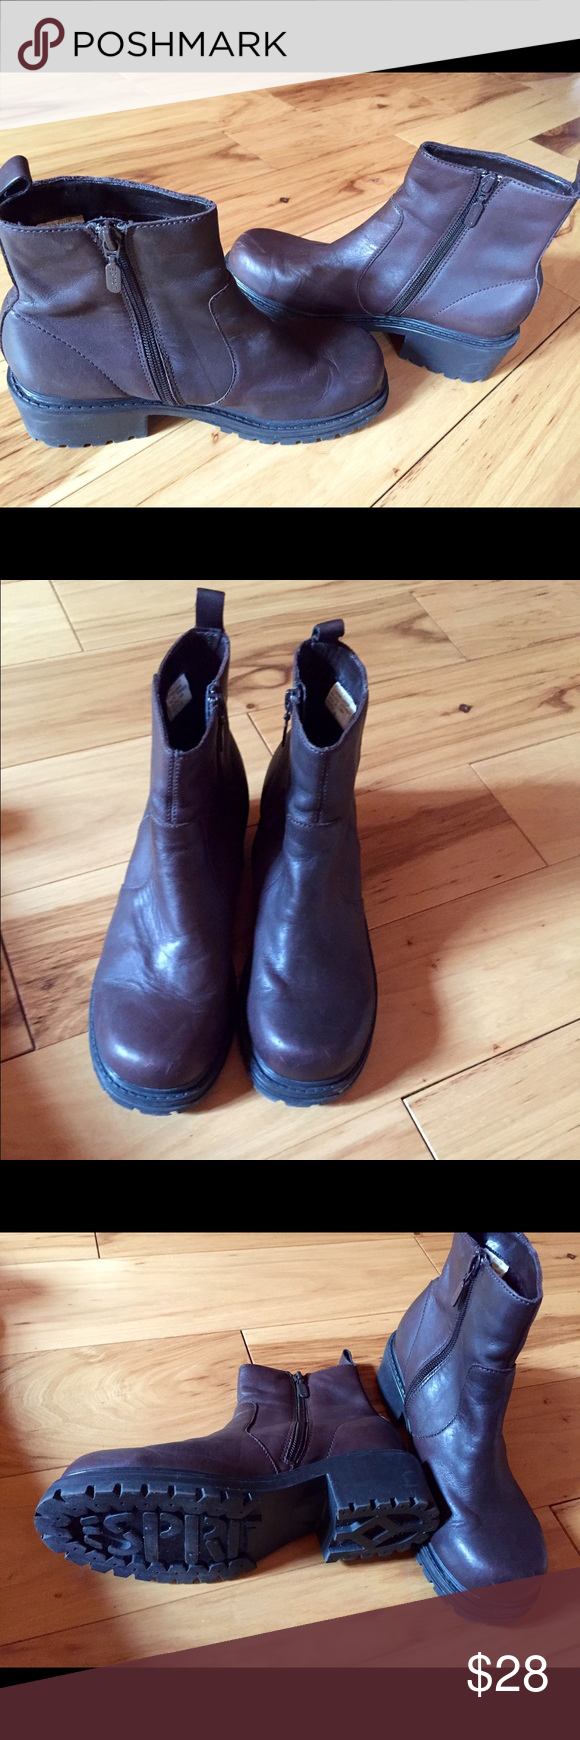 Esprit Brown Leather Boots Cute leather boots.  Worn once, but in very good condition.  A couple of minor scratches in the front of one of the boots.  Before shipping, I will polish them.  Size 8.  Ready for fall and winter! Esprit Shoes Ankle Boots & Booties